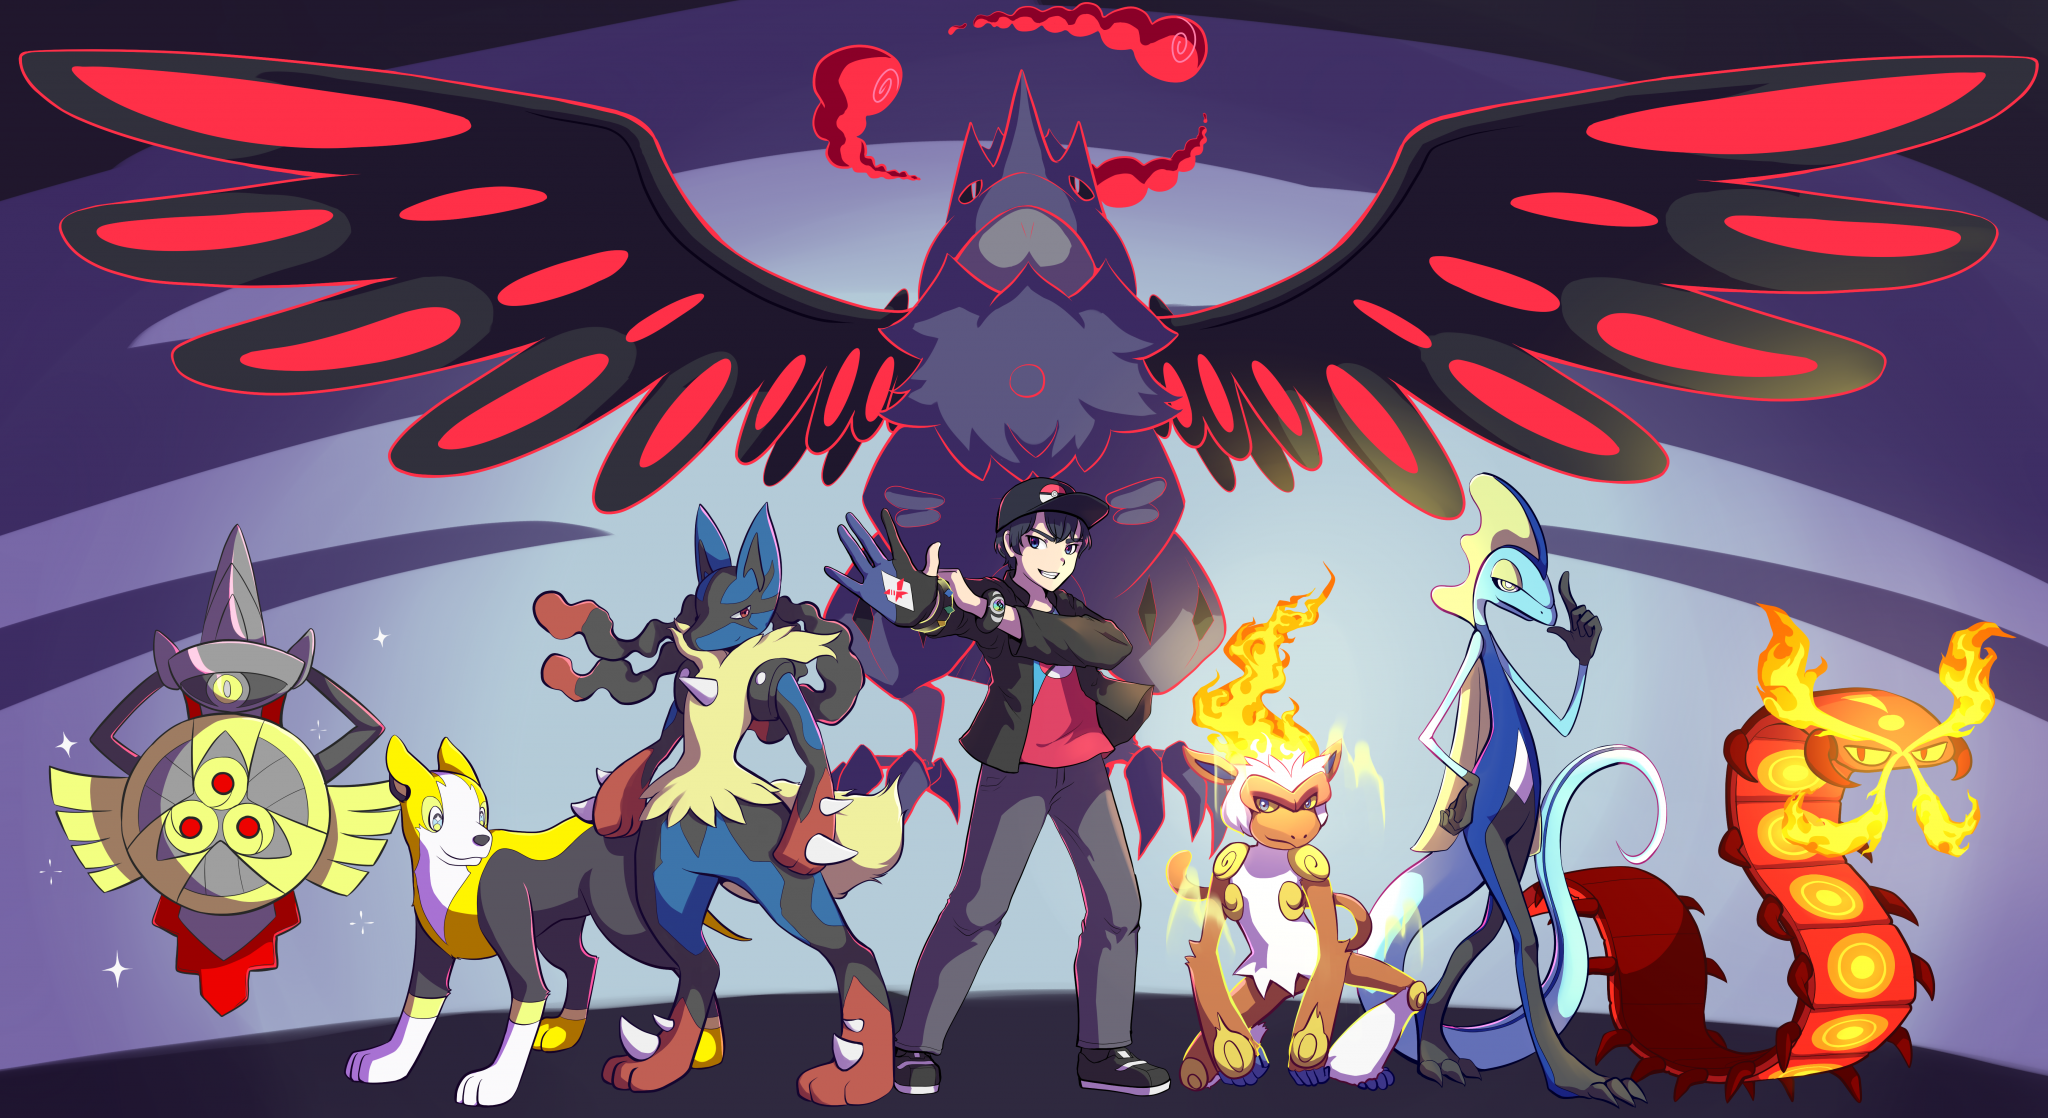 114328-galar-team-artwork-by-dreamdust-reupload